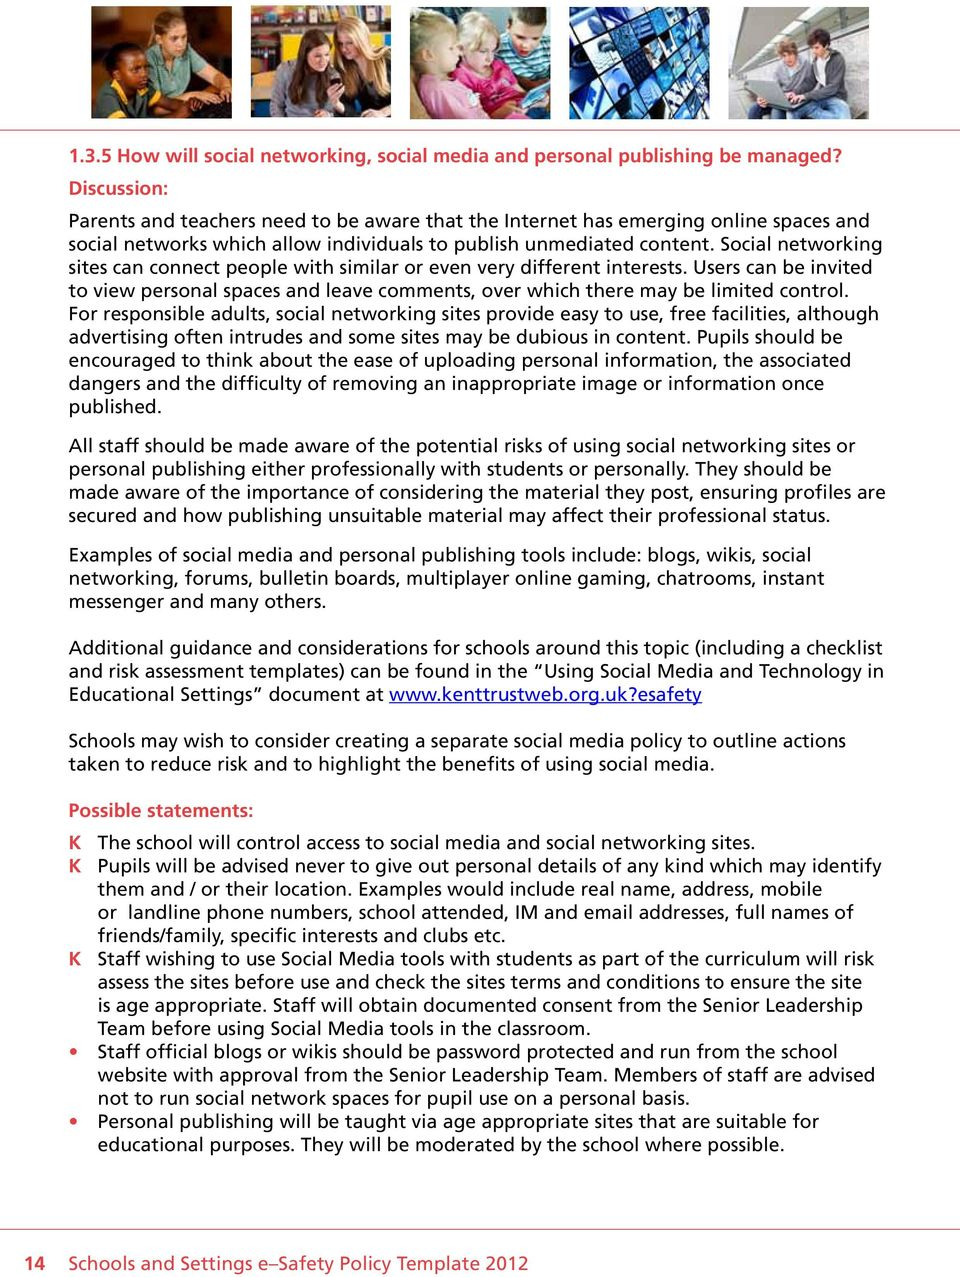 Schools and settings e safety policy template pdf social networking sites can connect people with similar or even very different interests users can maxwellsz